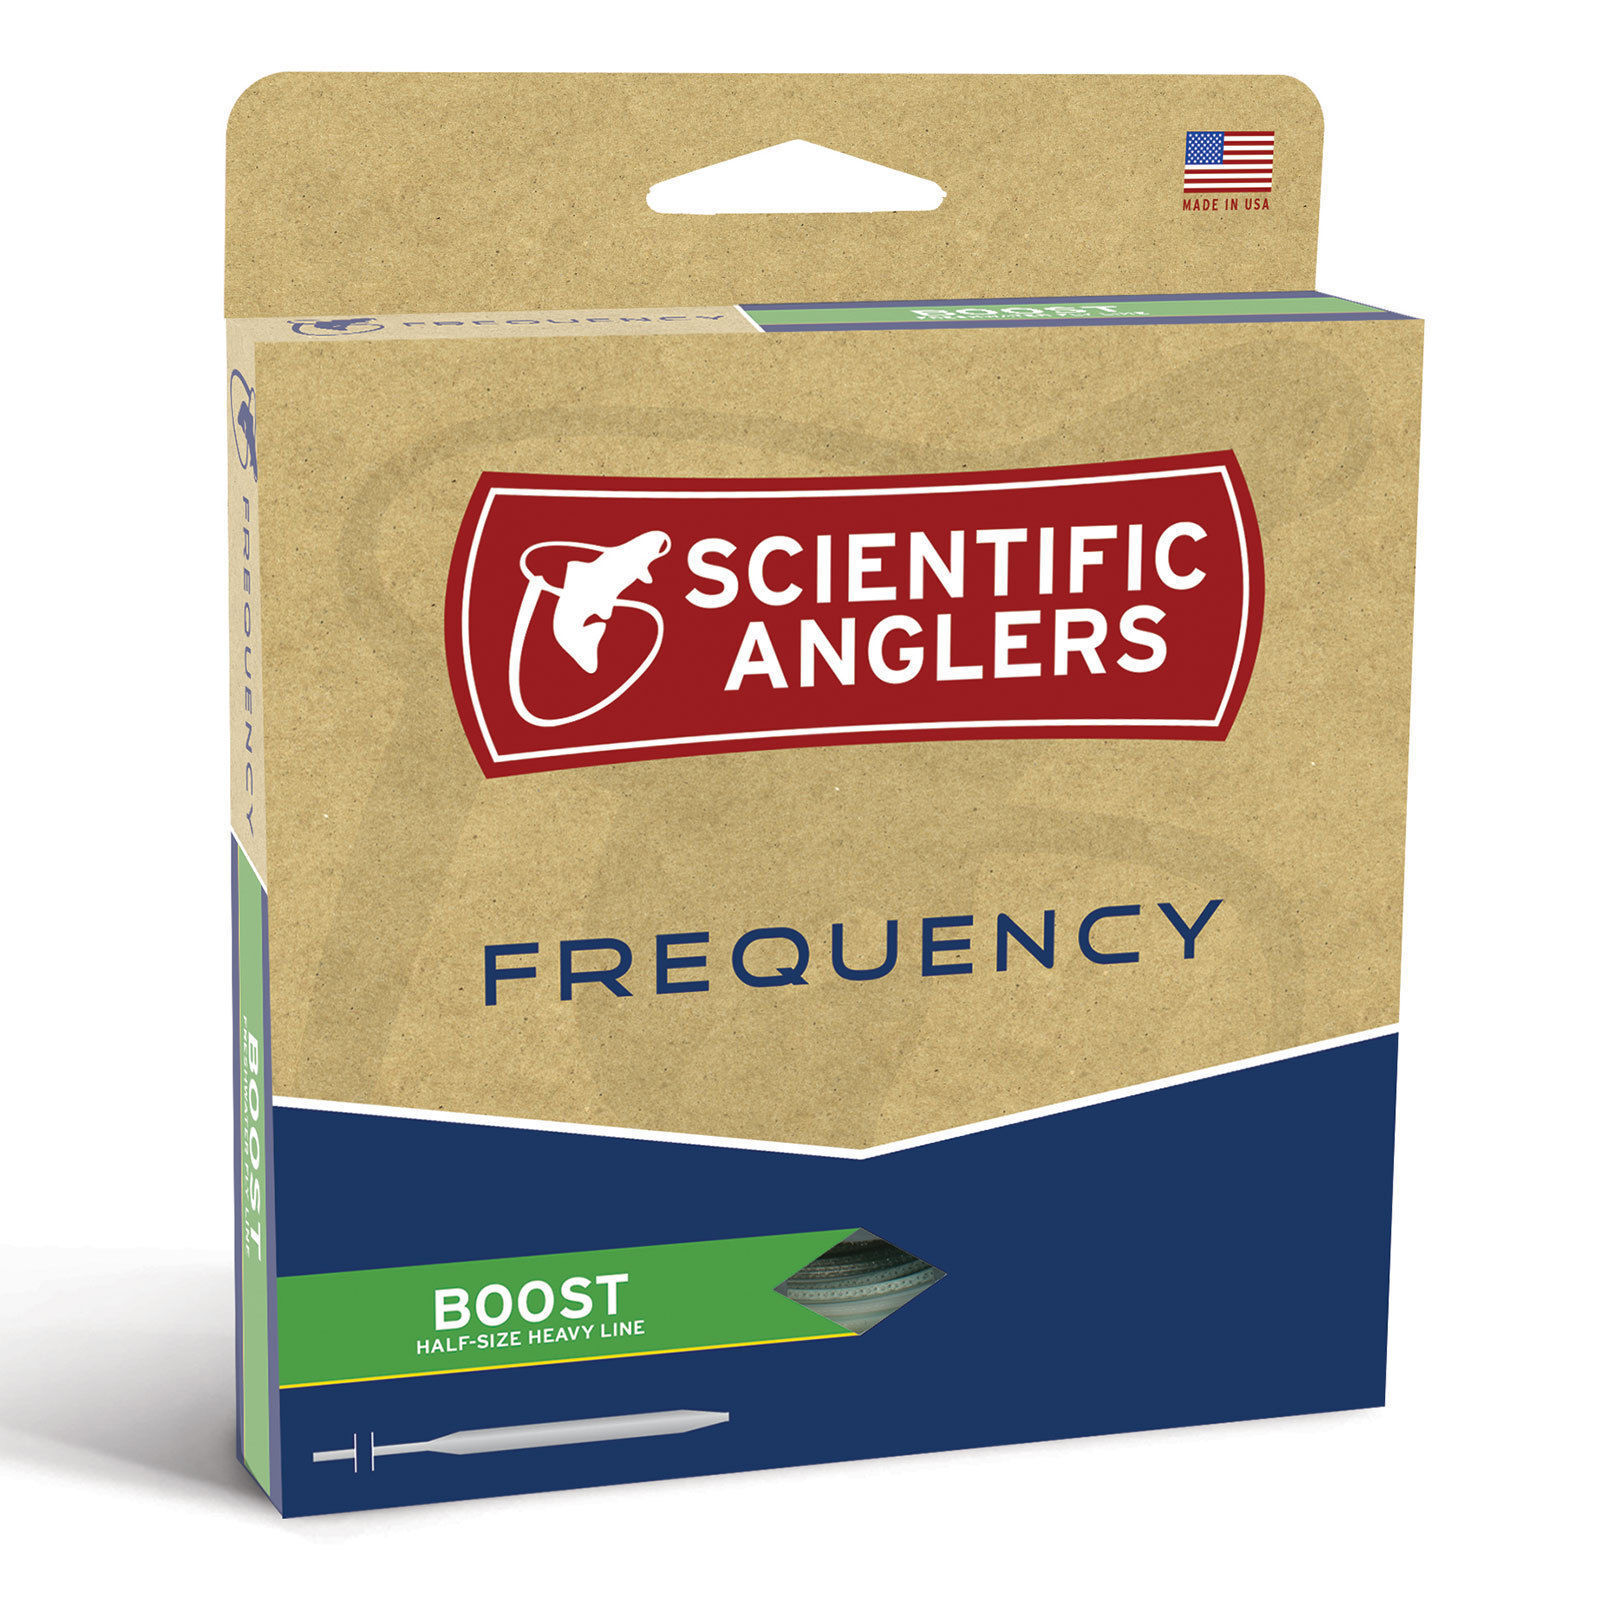 SCIENTIFIC ANGLERS FREQUENCY BOOST WF-8-F  LINE 8 WEIGHT FLY LINE  1/2 SIZE HEAVY 584079